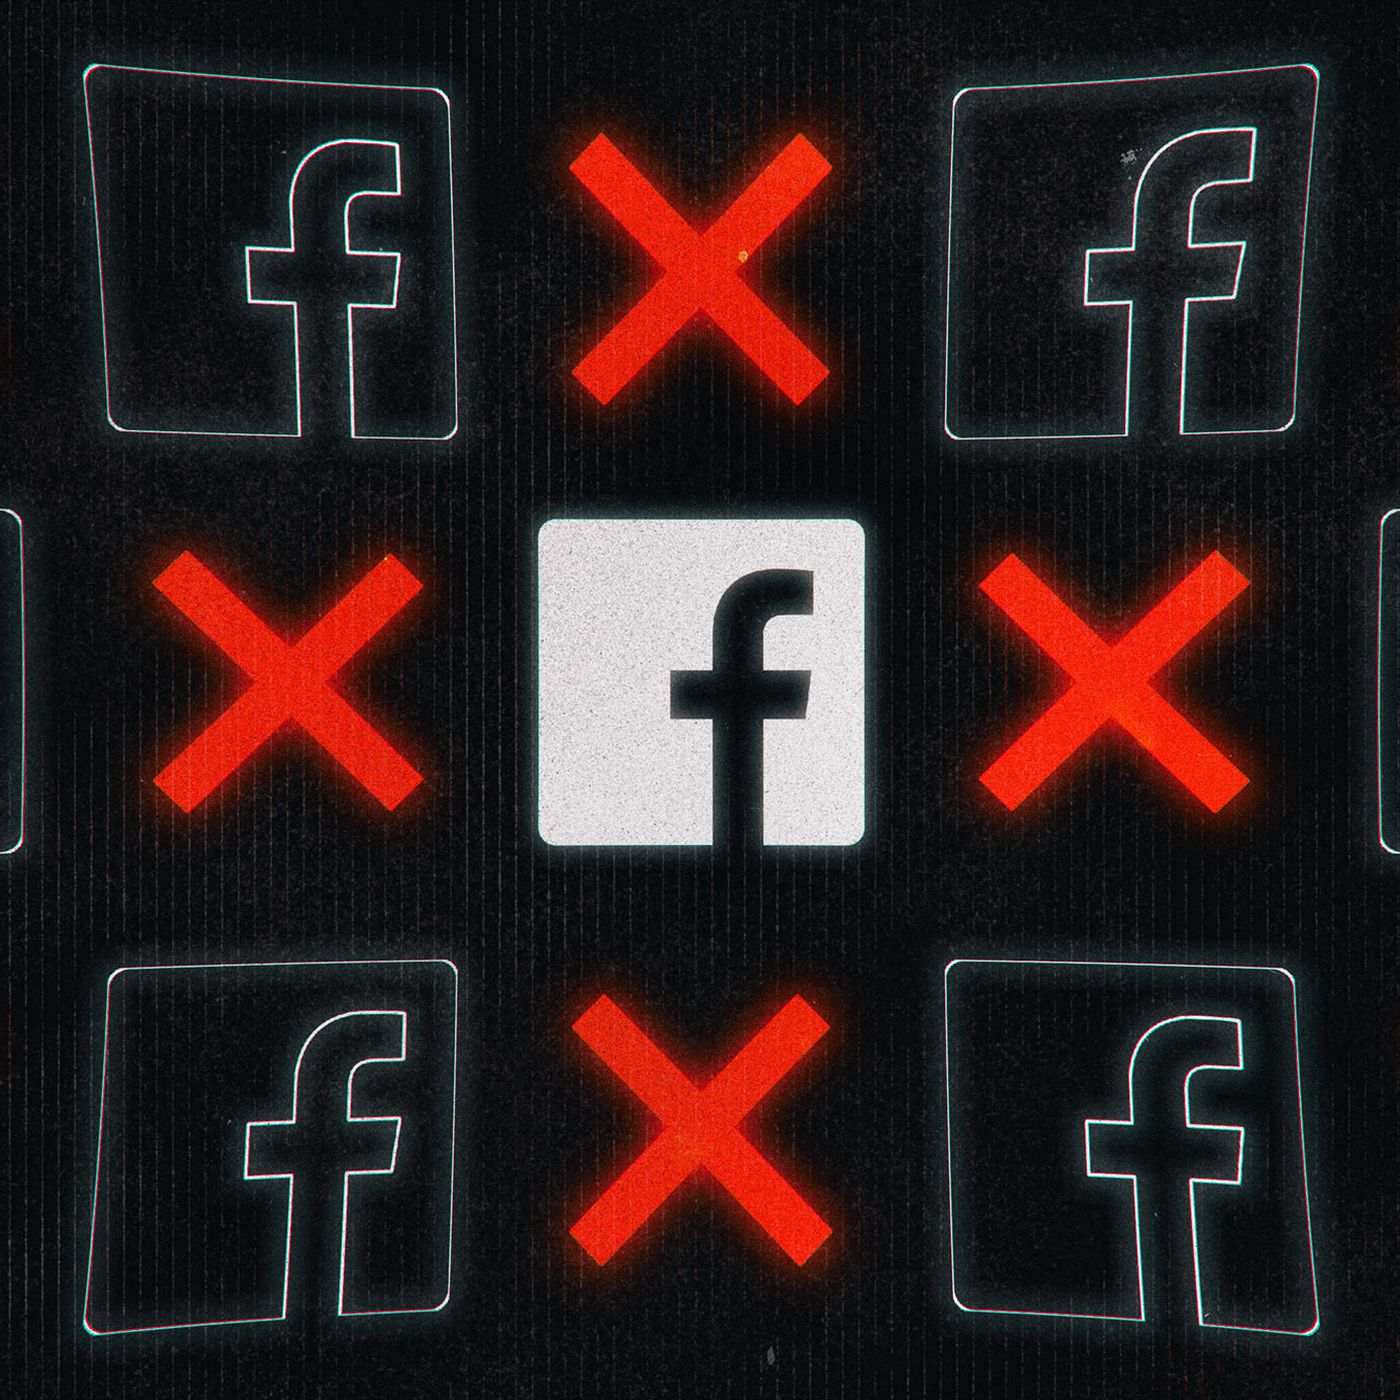 How To Report A Problem On Facebook The Verge